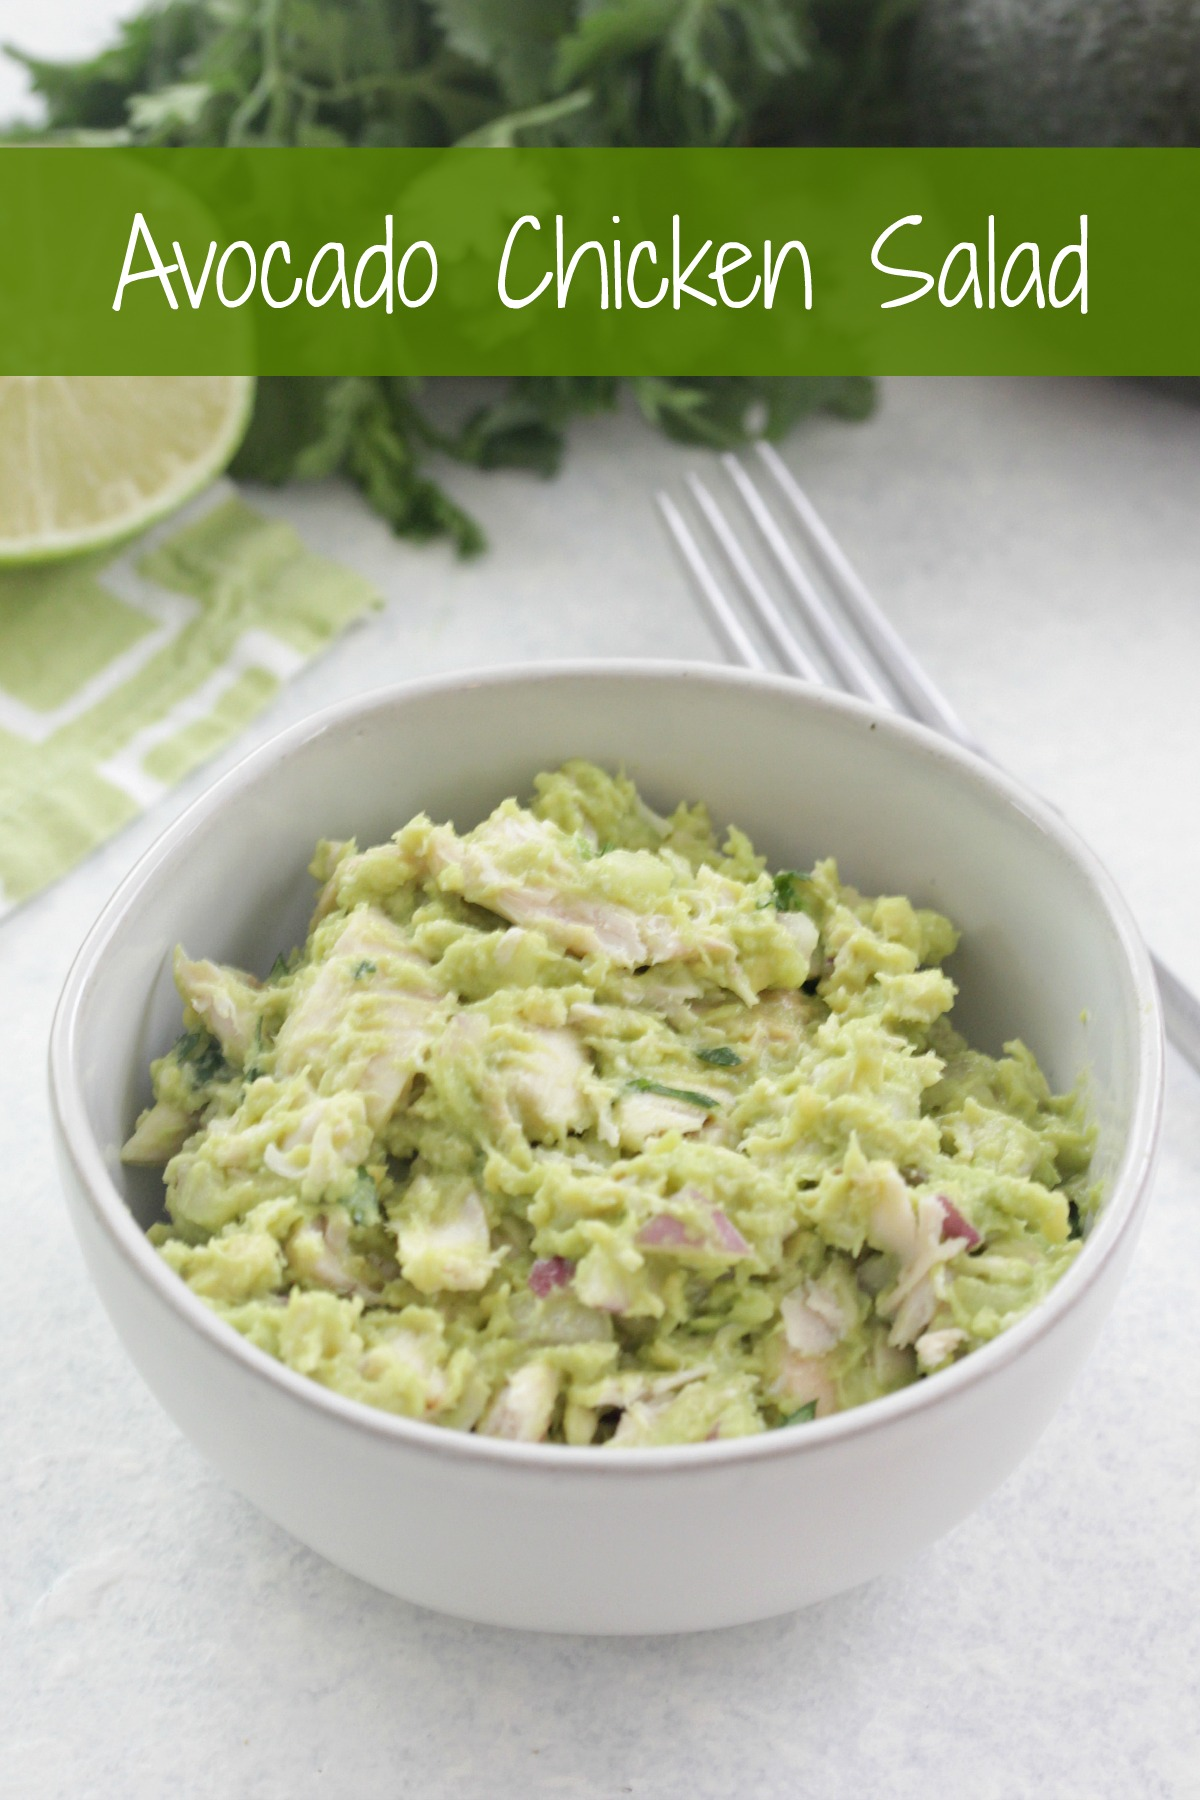 Avocado Chicken Salad in a white bowl with lime and cilantro